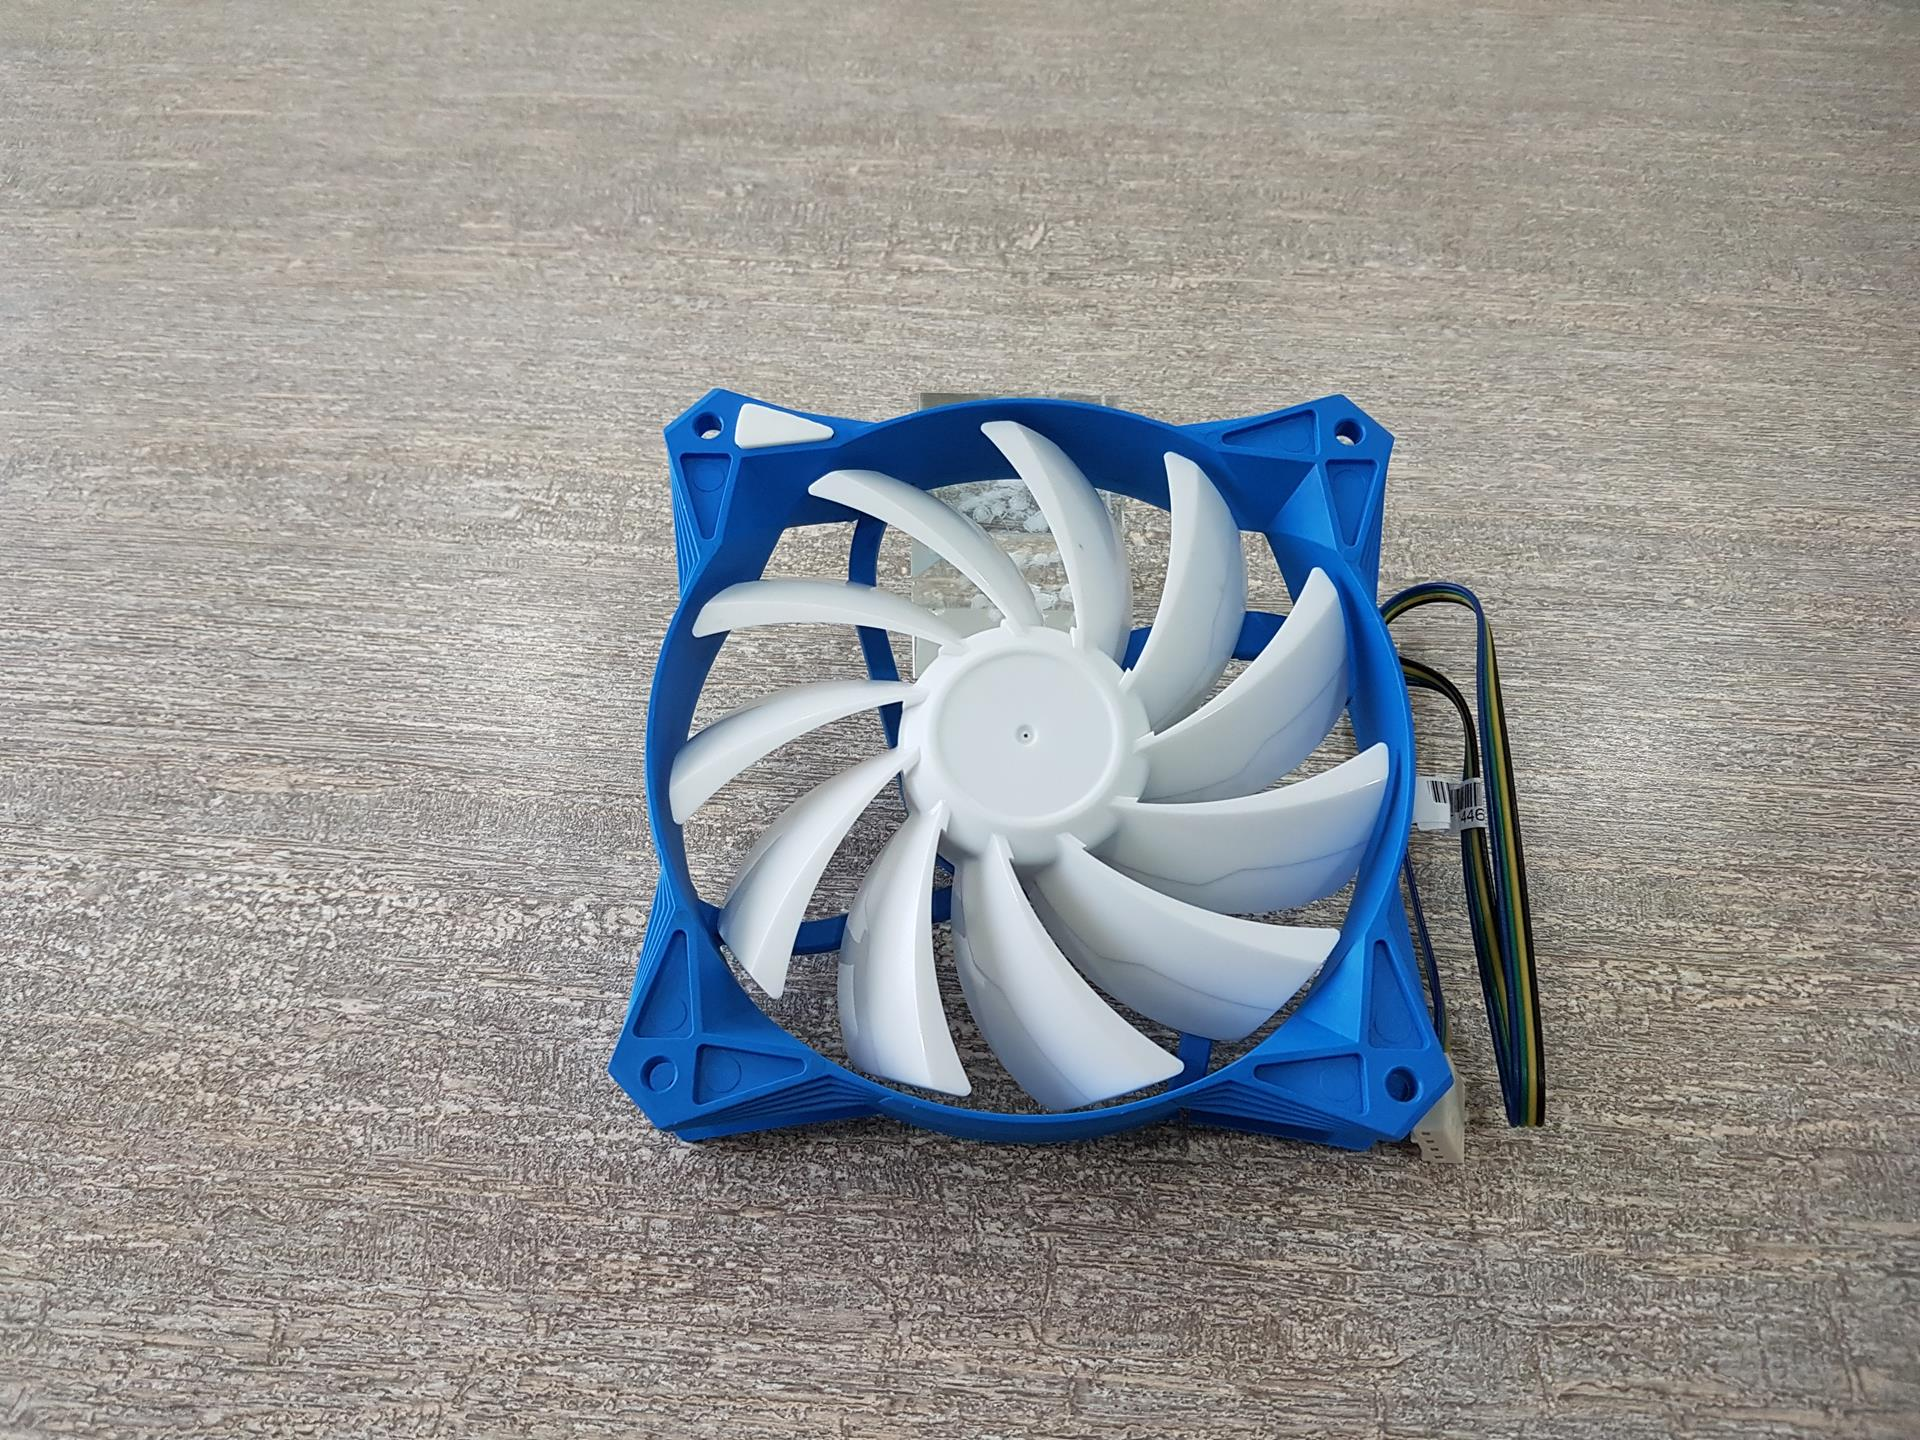 SilverStone SST-FW122 Professional PWM 120mm Fans Review